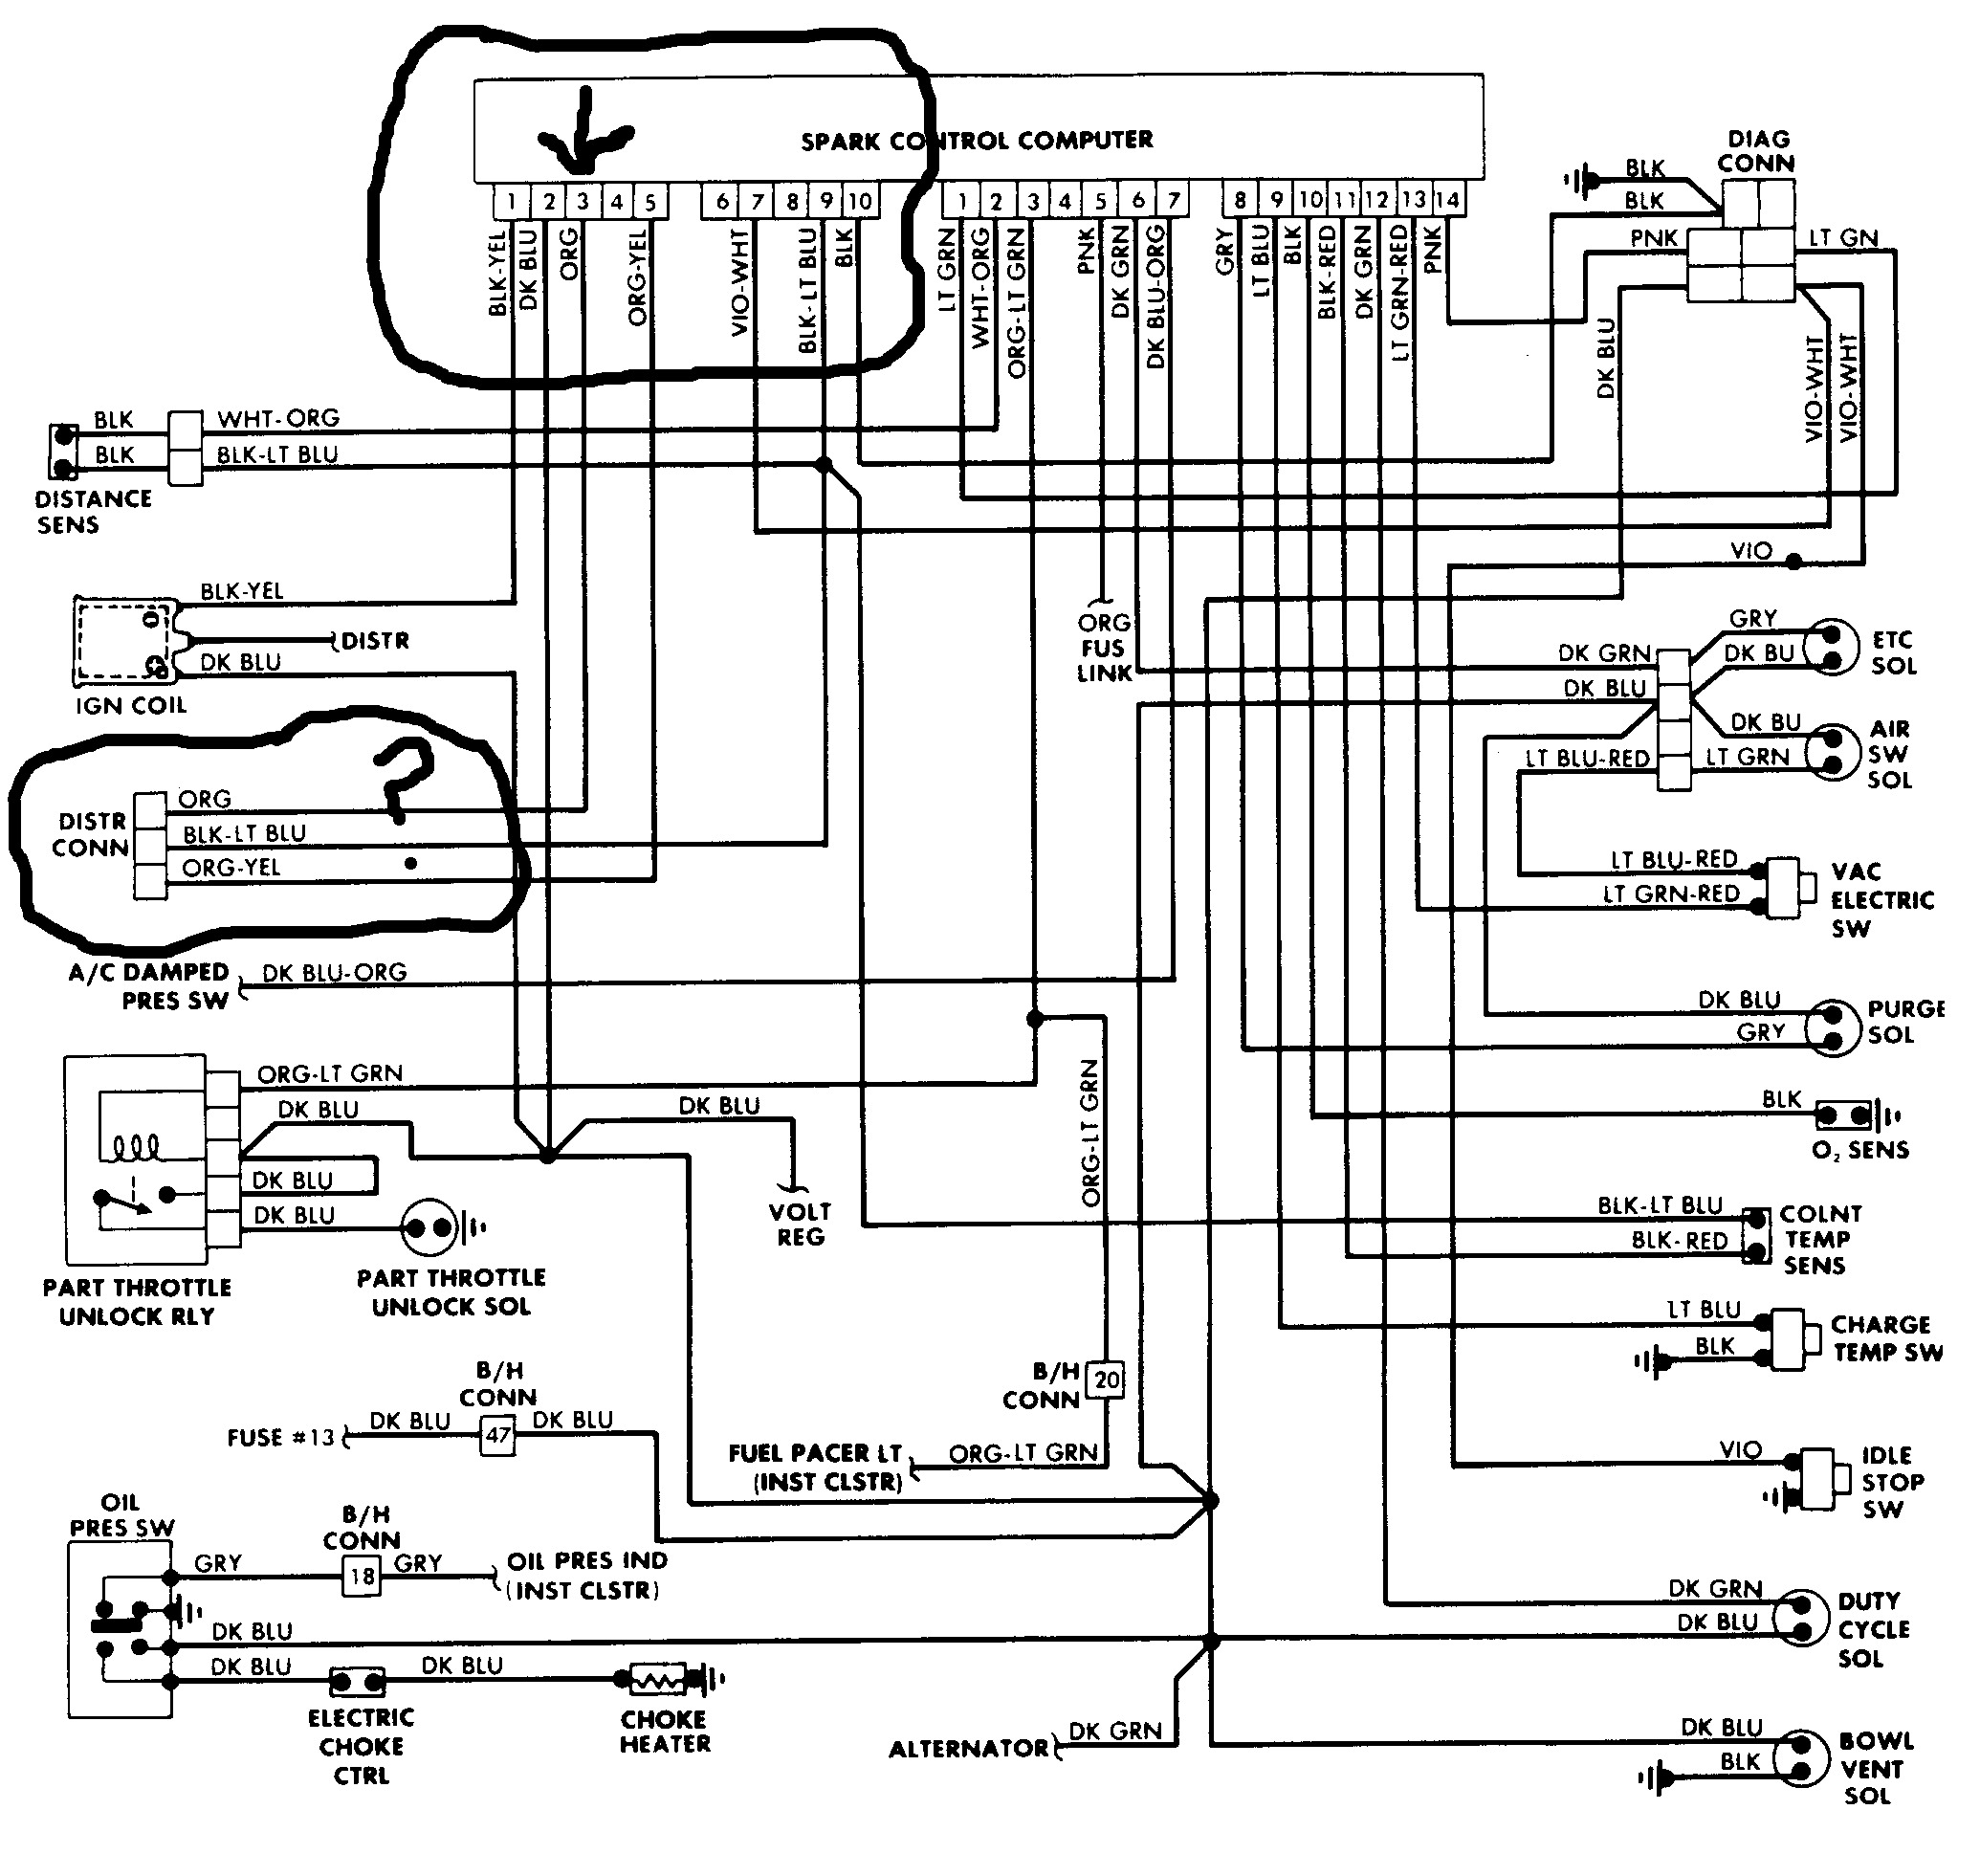 1989 dodge wiring harness diagram 1989 dodge wiring coil 1989 dodge wiring coil | wiring diagram